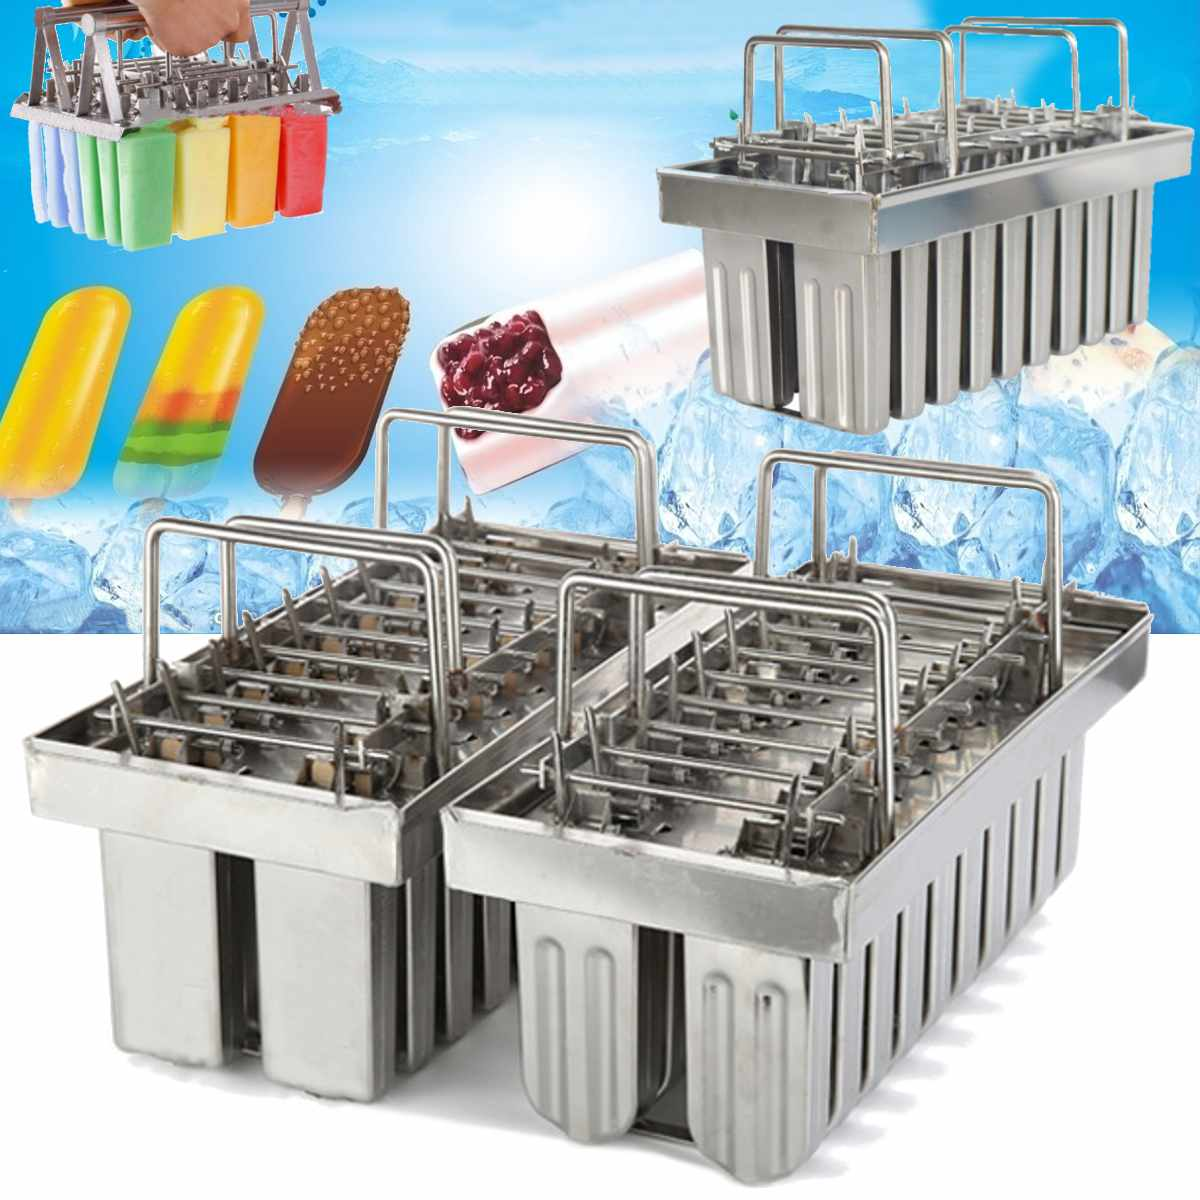 20 Molds Stainless Steel DIY Ice Cream Mould Popsicle Ice Cream Make Tool Silver Home Ice Cream Maker Stick Holder Mould New